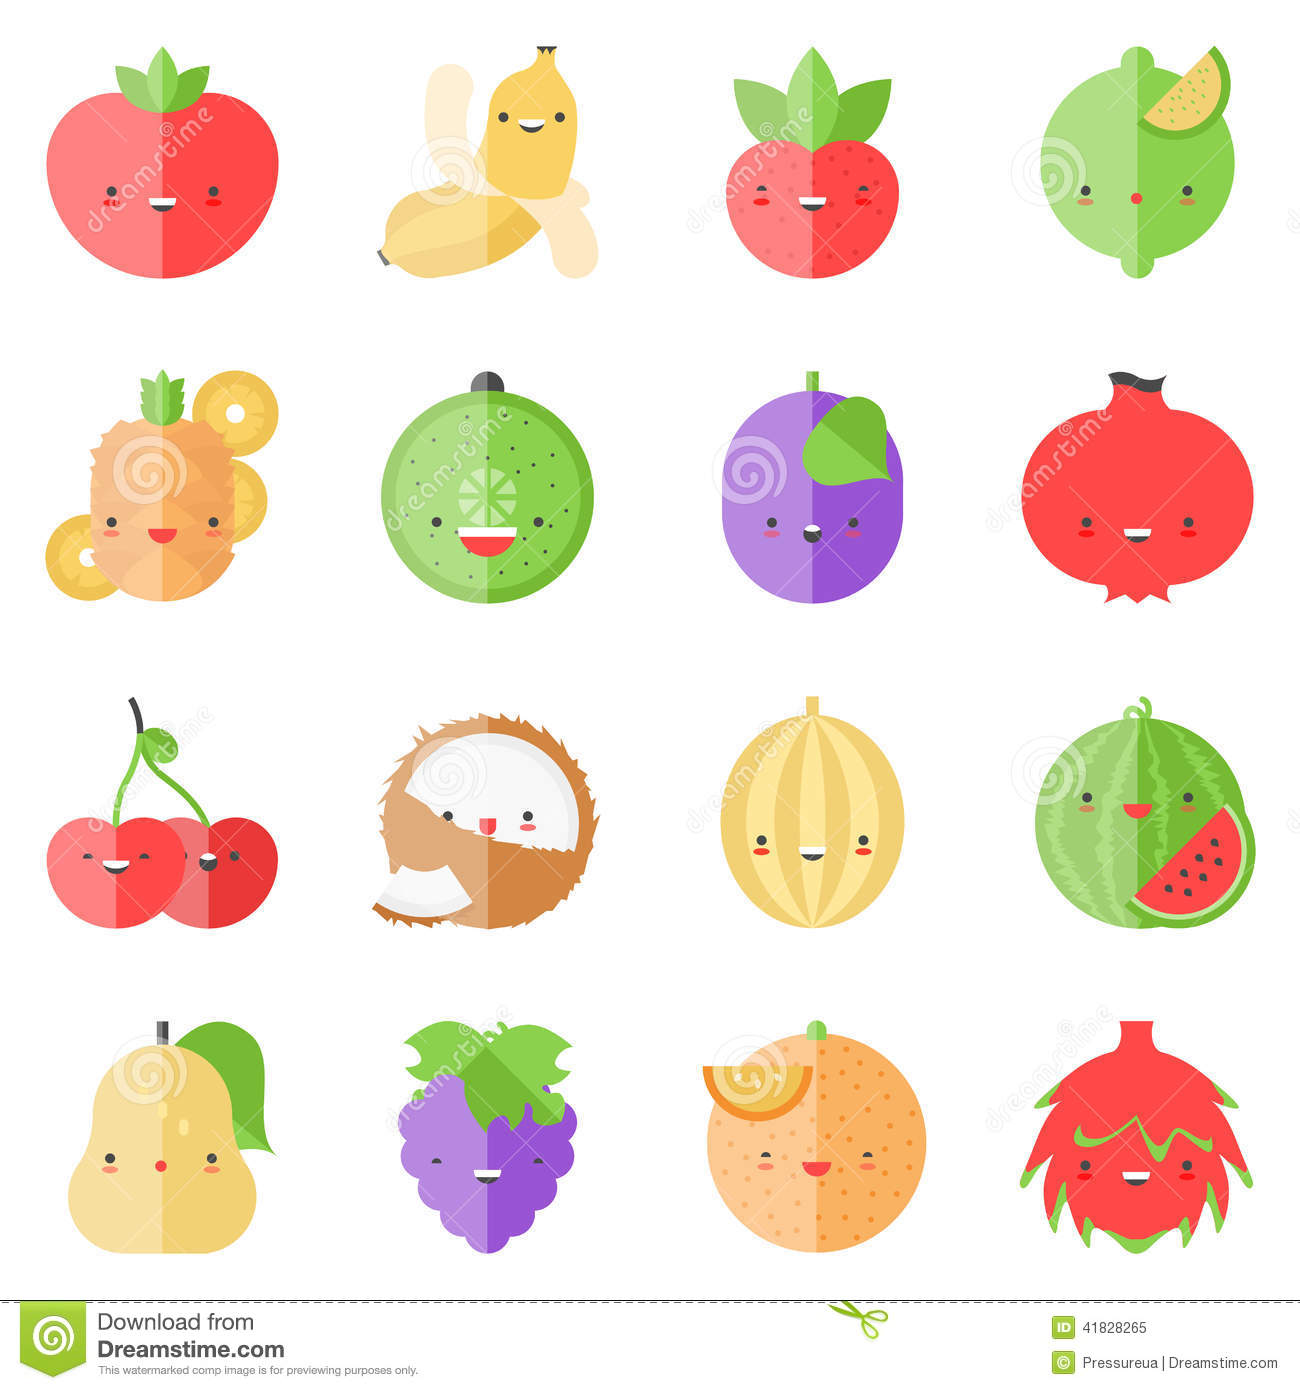 Set of popular tasty fruits in cute modern kawaii style flat design